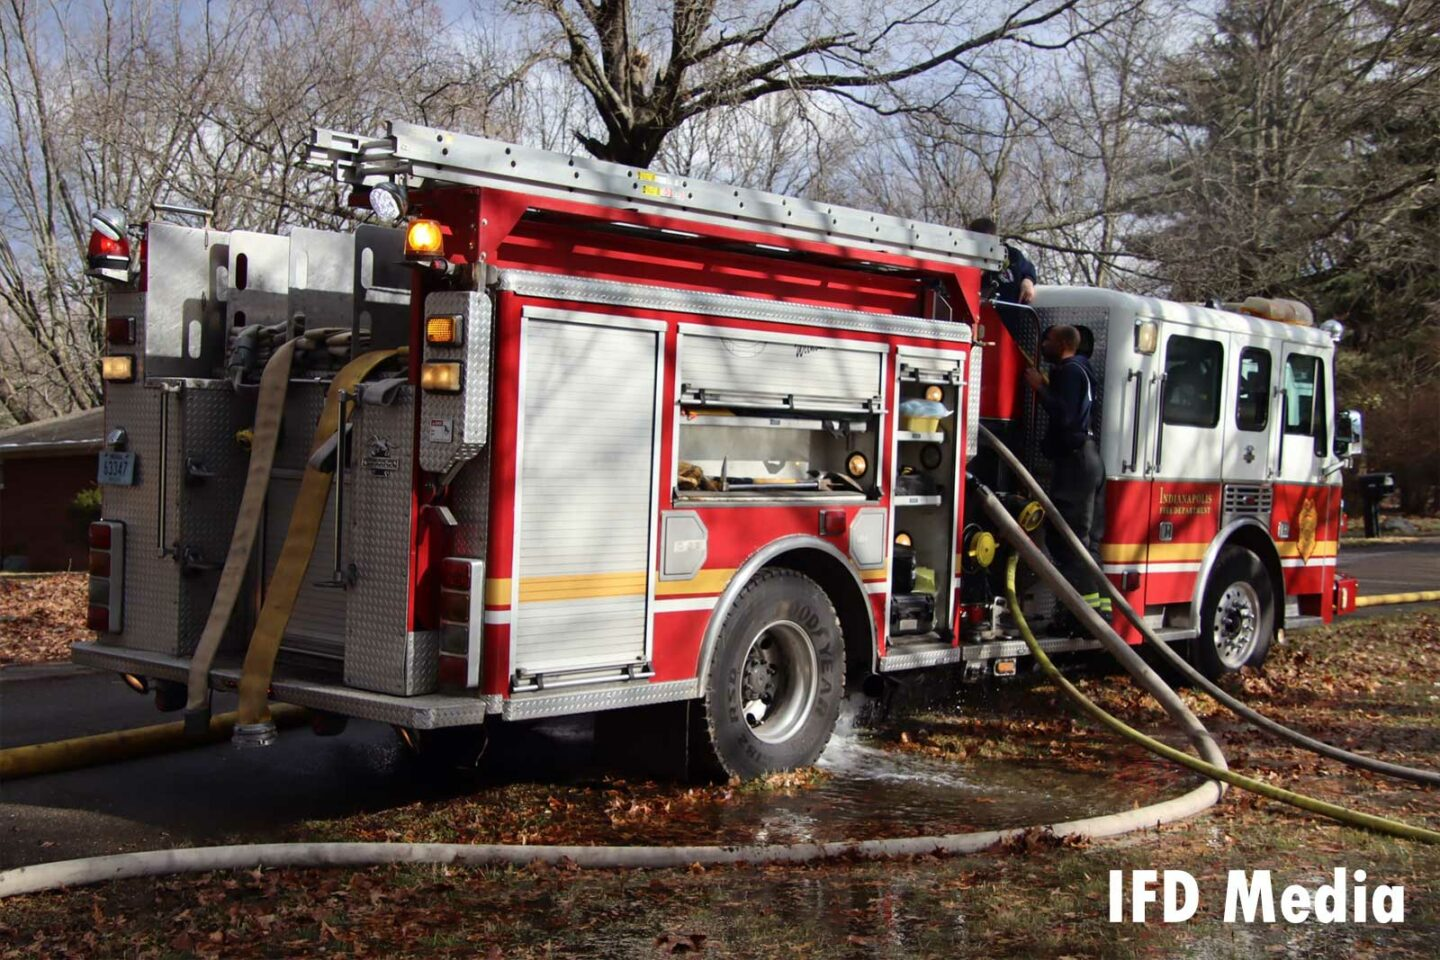 Fire apparatus with multiple lines pumping